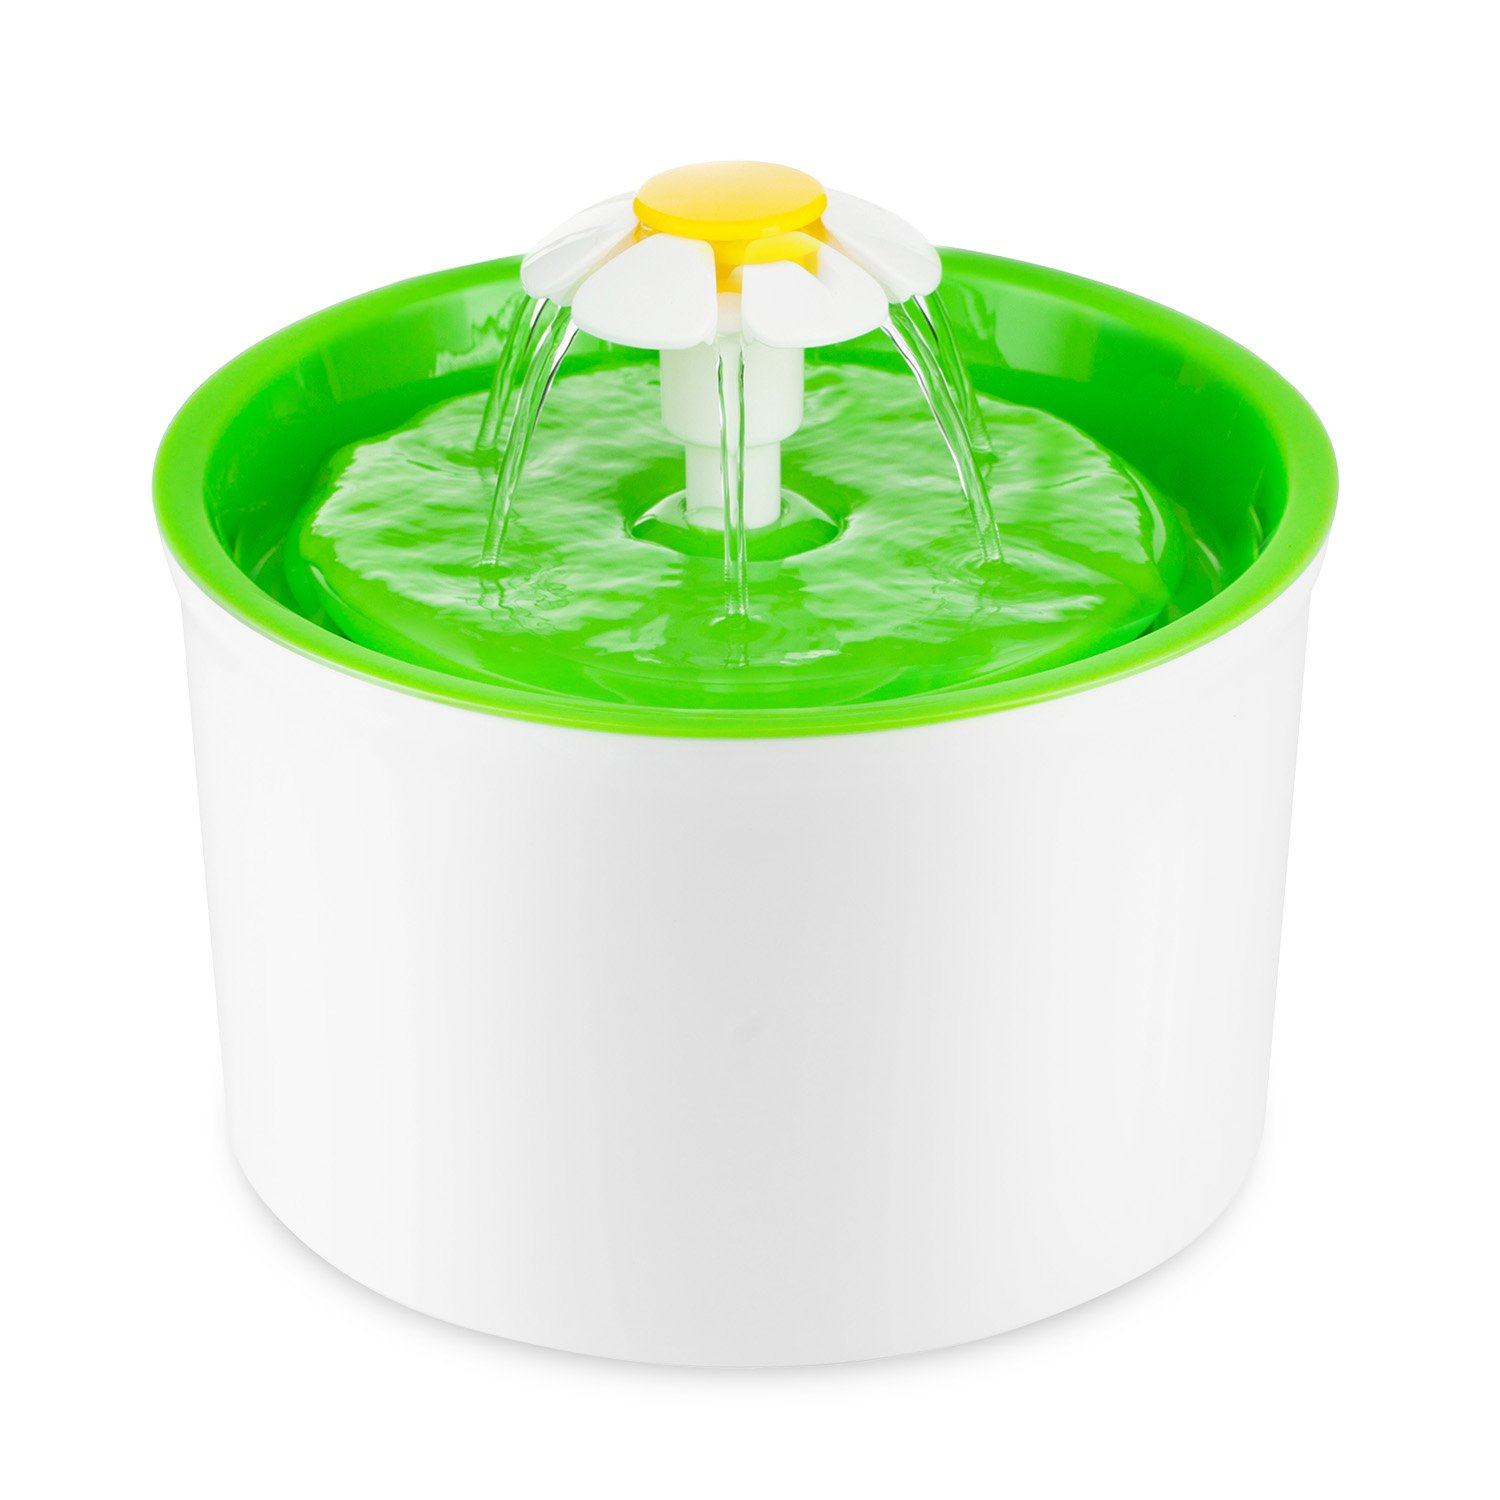 Eleoption Flower Water Fountain For Dog Cat Pets Birds Bath Feeder,Automatic Electric Cat Dog Water Dispenser Fountain Drinking Water Bowl With 1.6 L (Green FountainA)